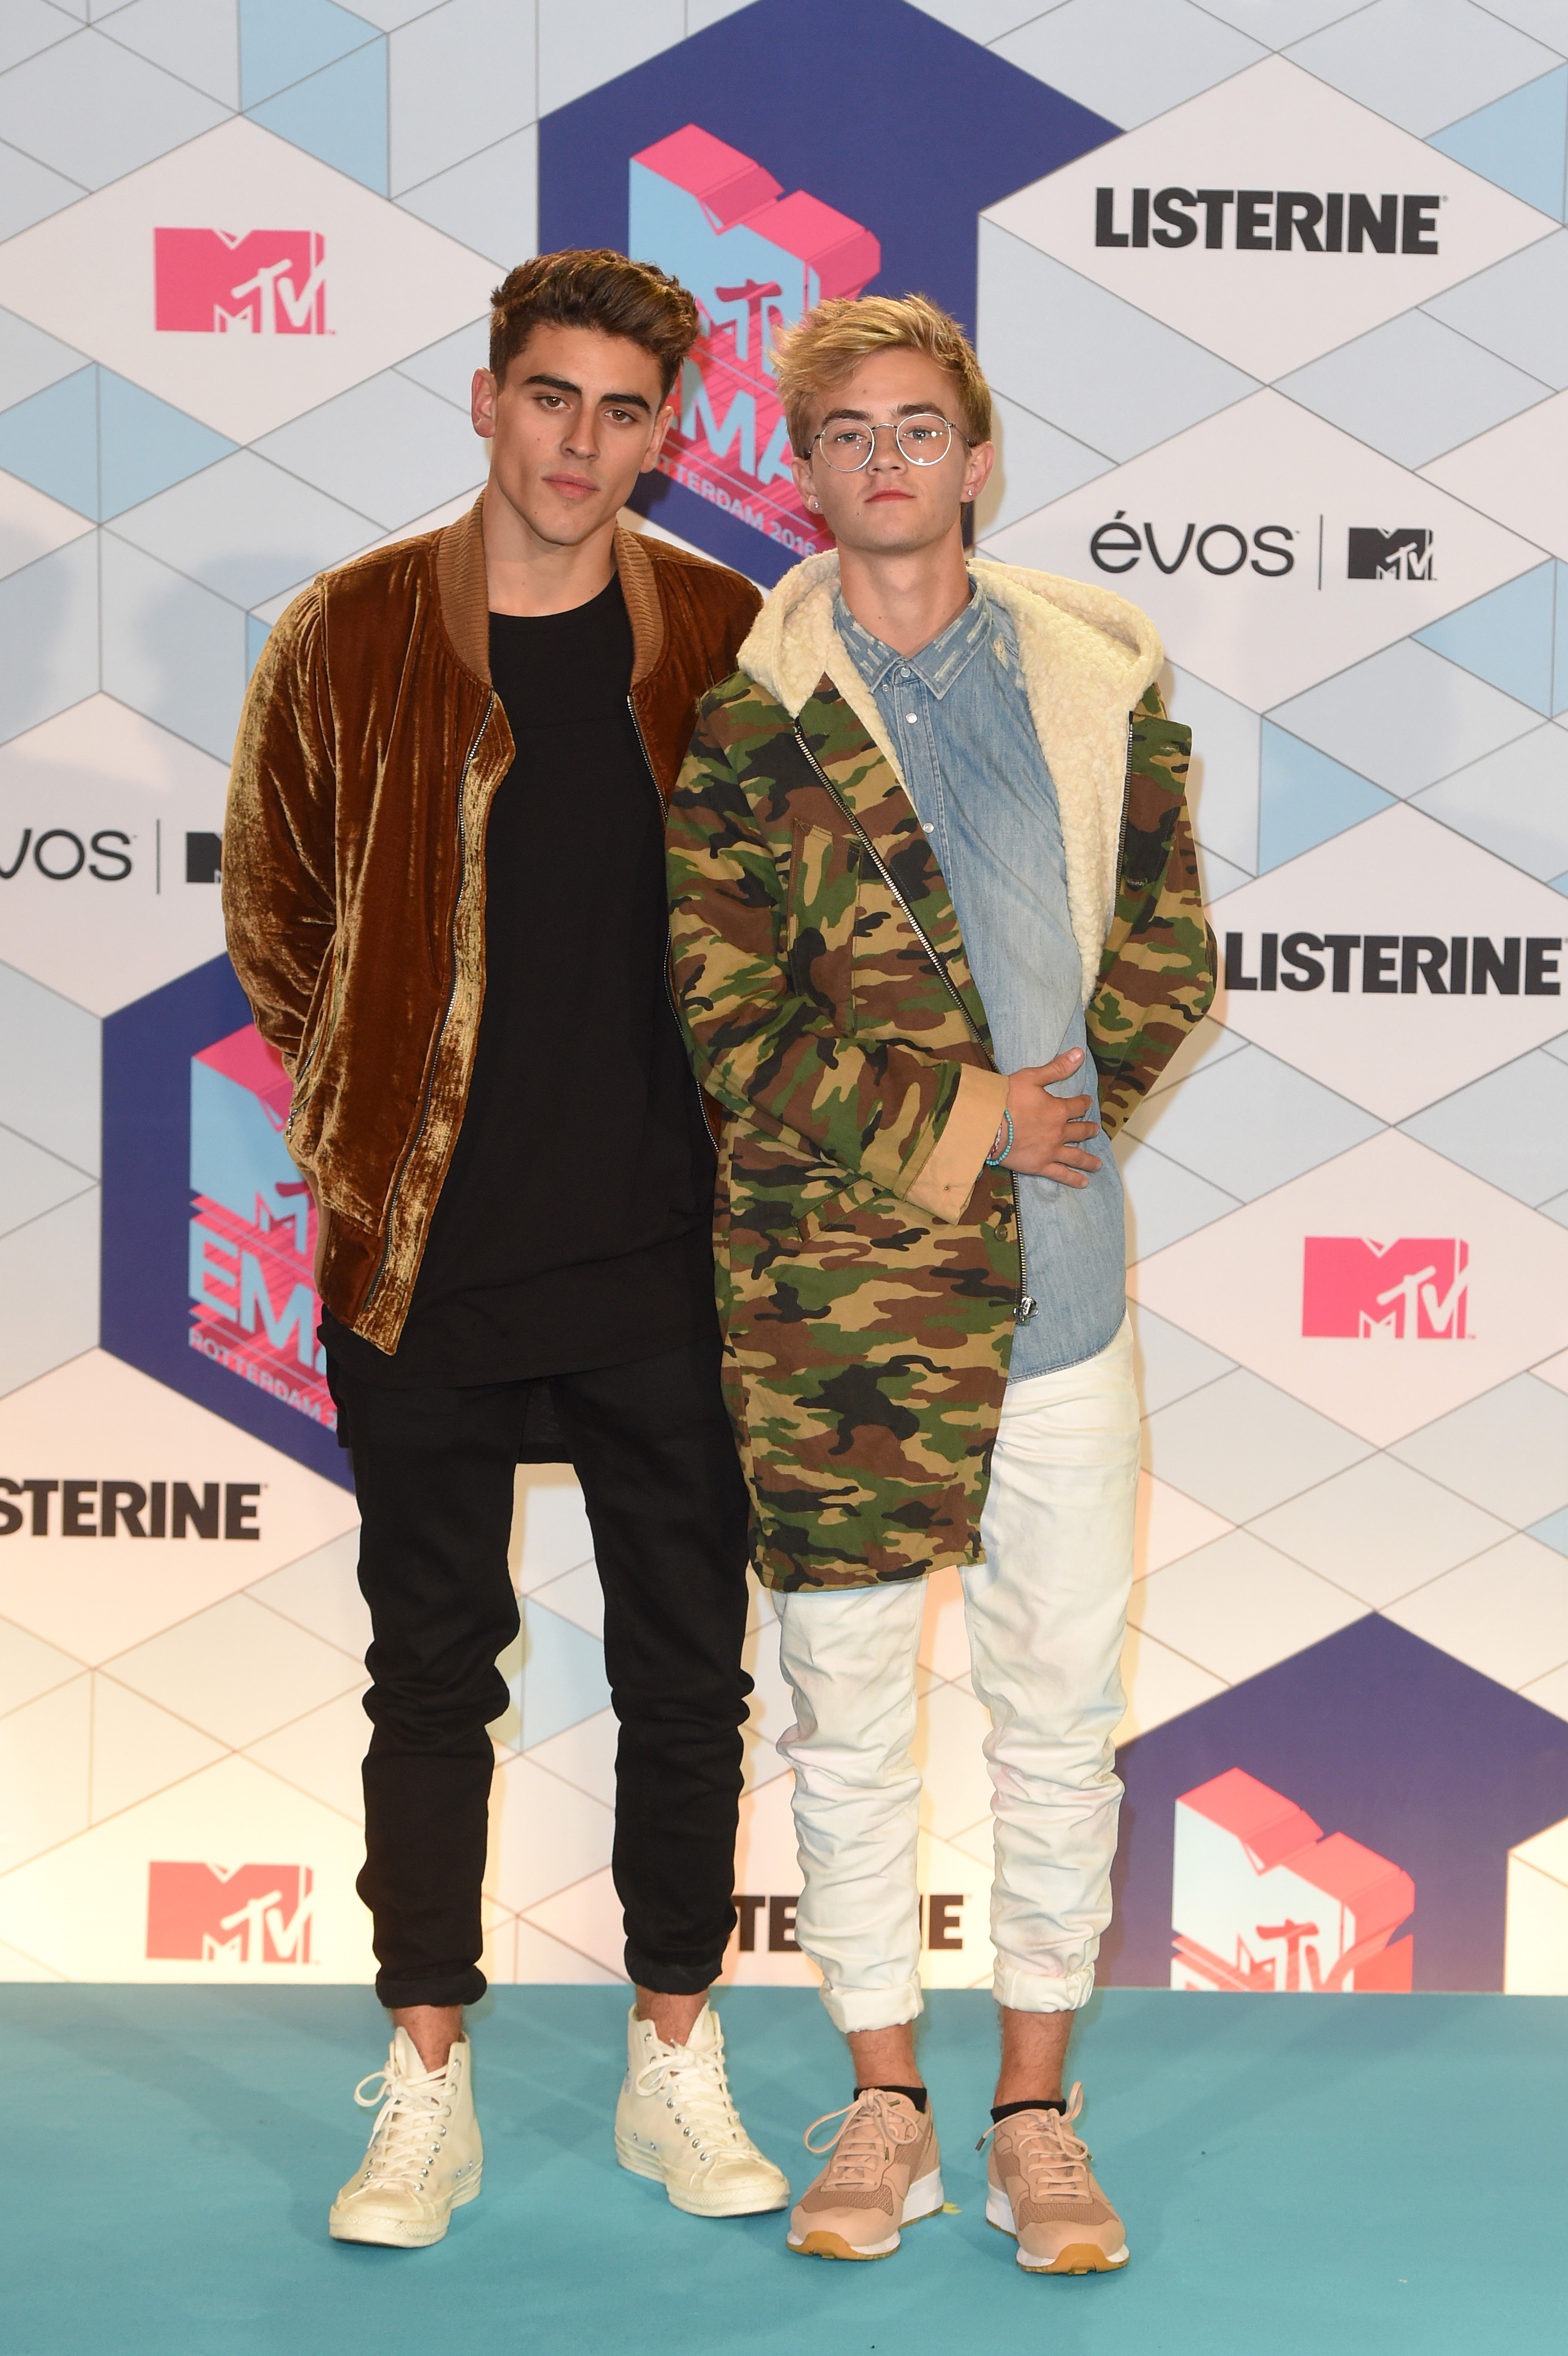 ROTTERDAM, NETHERLANDS - NOVEMBER 06:  Jack and Jack pose in the winner's room during the MTV Europe Music Awards 2016 on November 6, 2016 in Rotterdam, Netherlands.  (Photo by Anthony Harvey/Getty Images for MTV) *** Local Caption *** Jack Johnson;Jack Gilinsky